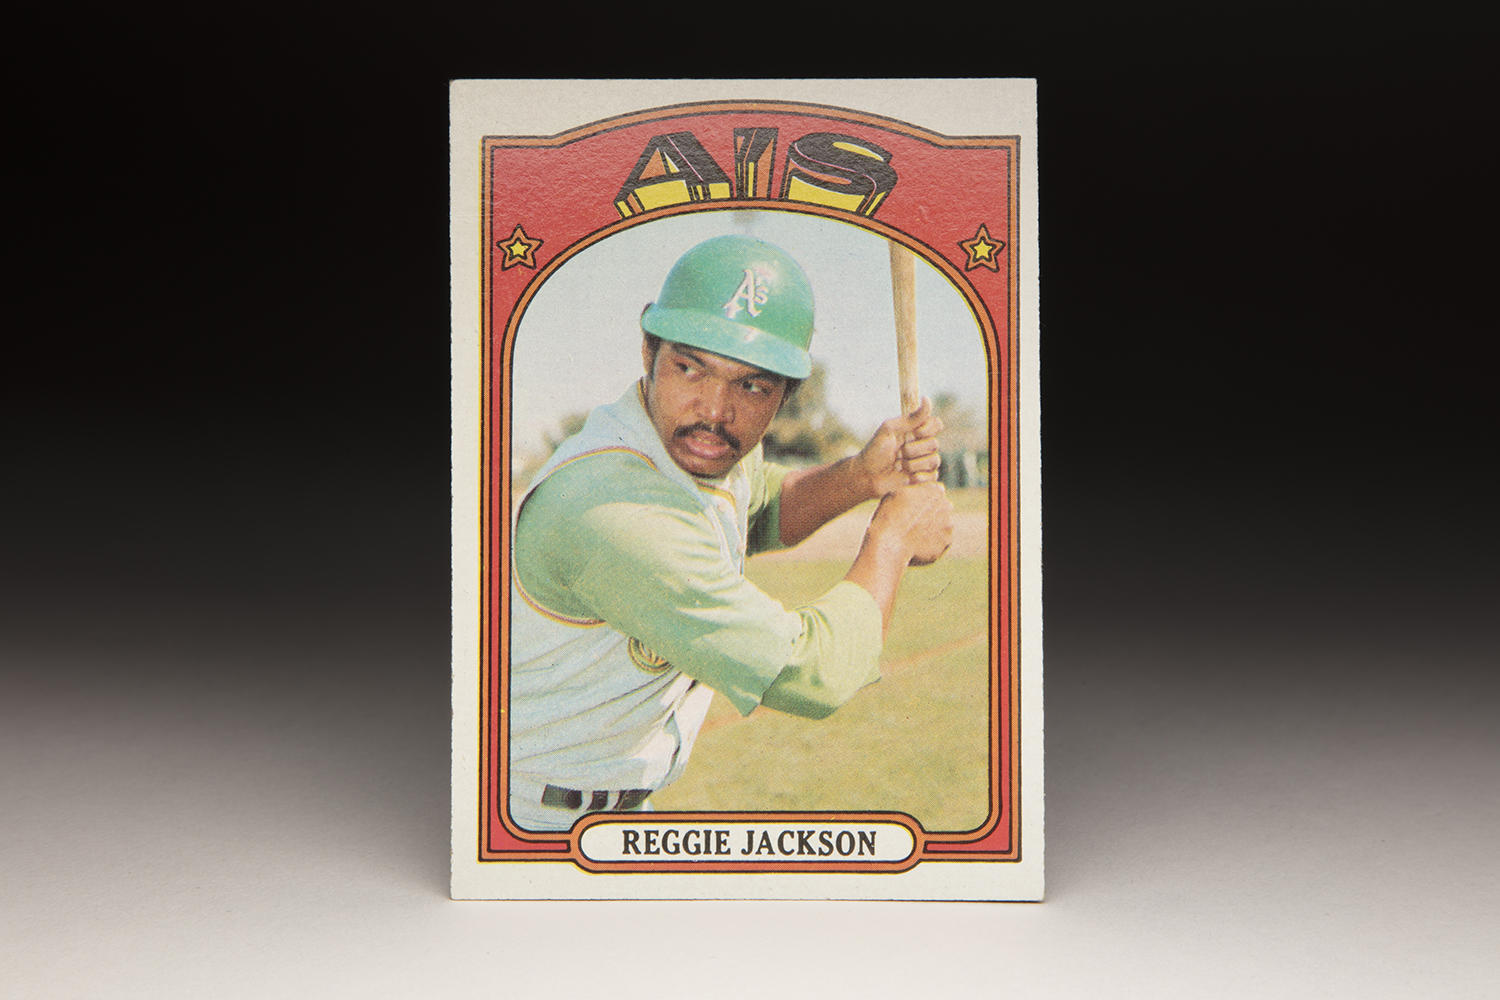 """The mustache Reggie Jackson sported in his 1972 Topps card sparks memories of Oakland's Mustache Gang, a trend started by Jackson which would develop into a promotion known as """"Mustache Day"""" by A's. (Milo Stewart Jr. / National Baseball Hall of Fame and Museum)"""